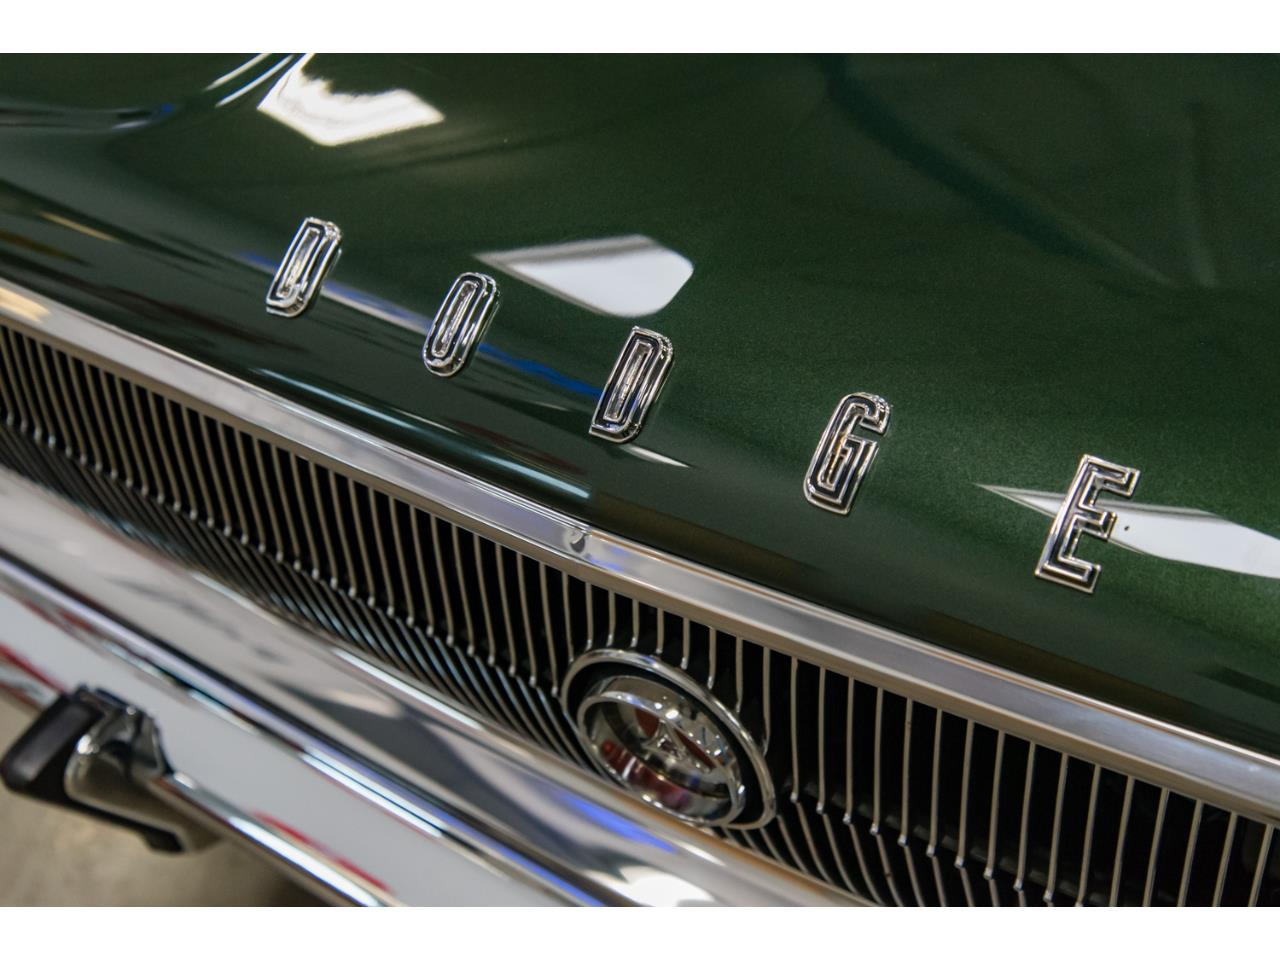 Large Picture of '67 Dodge Charger located in Ohio - $175,000.00 Offered by John Kufleitner's Galleria - LKM1